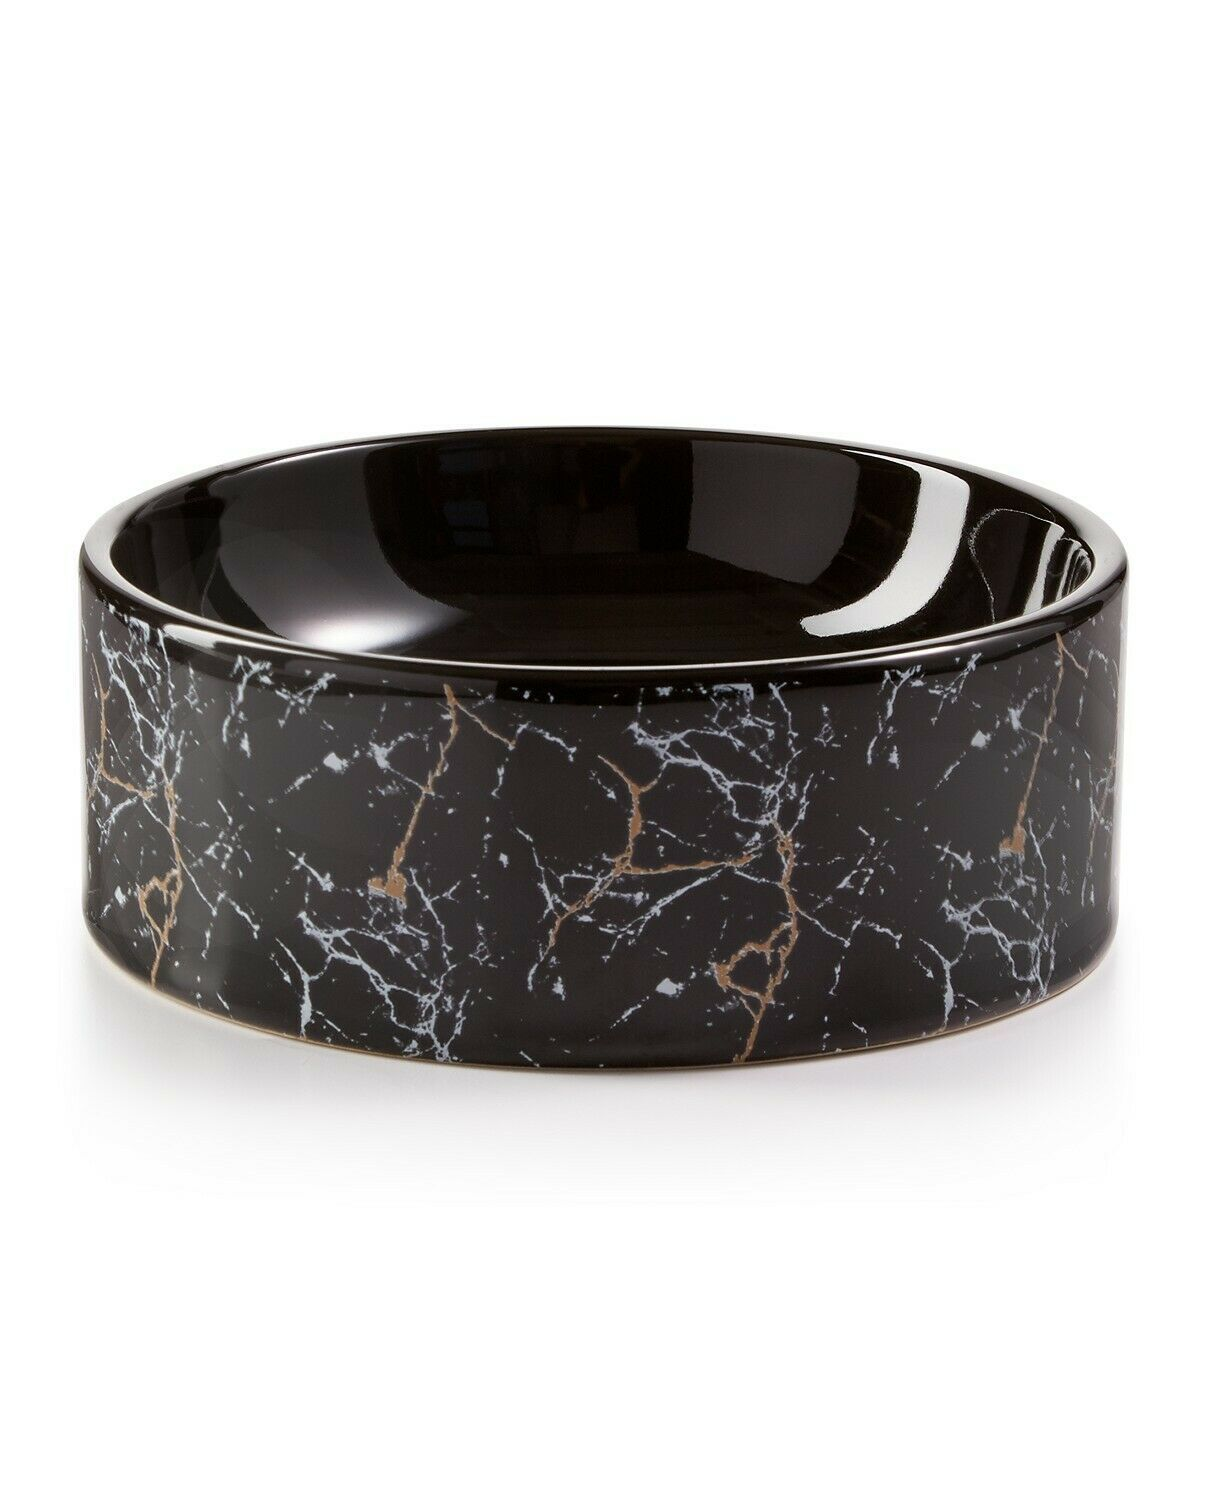 Primary image for Lacourte Pet Black Marble and Embossed Bowl